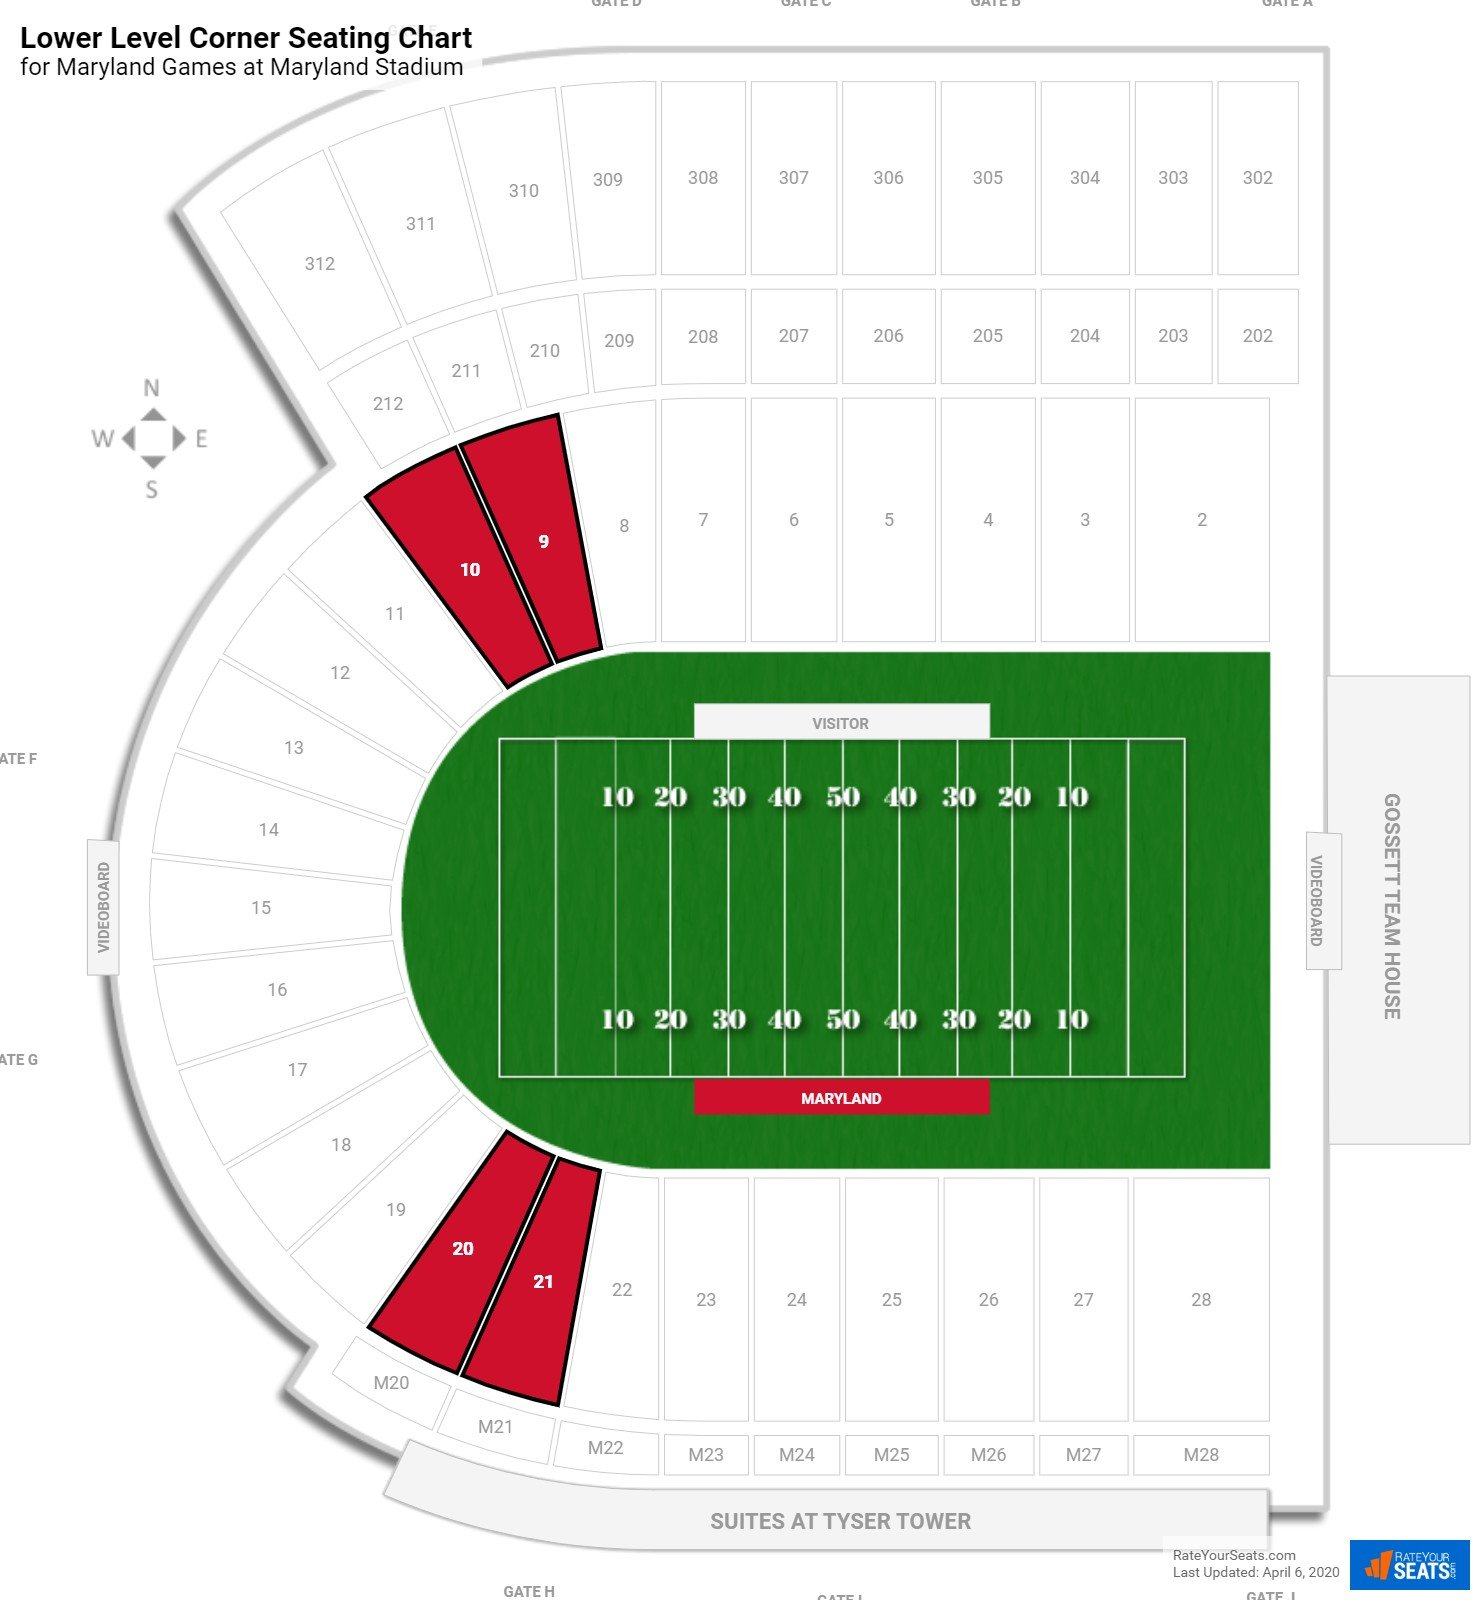 Byrd Stadium Lower Level Corner seating chart